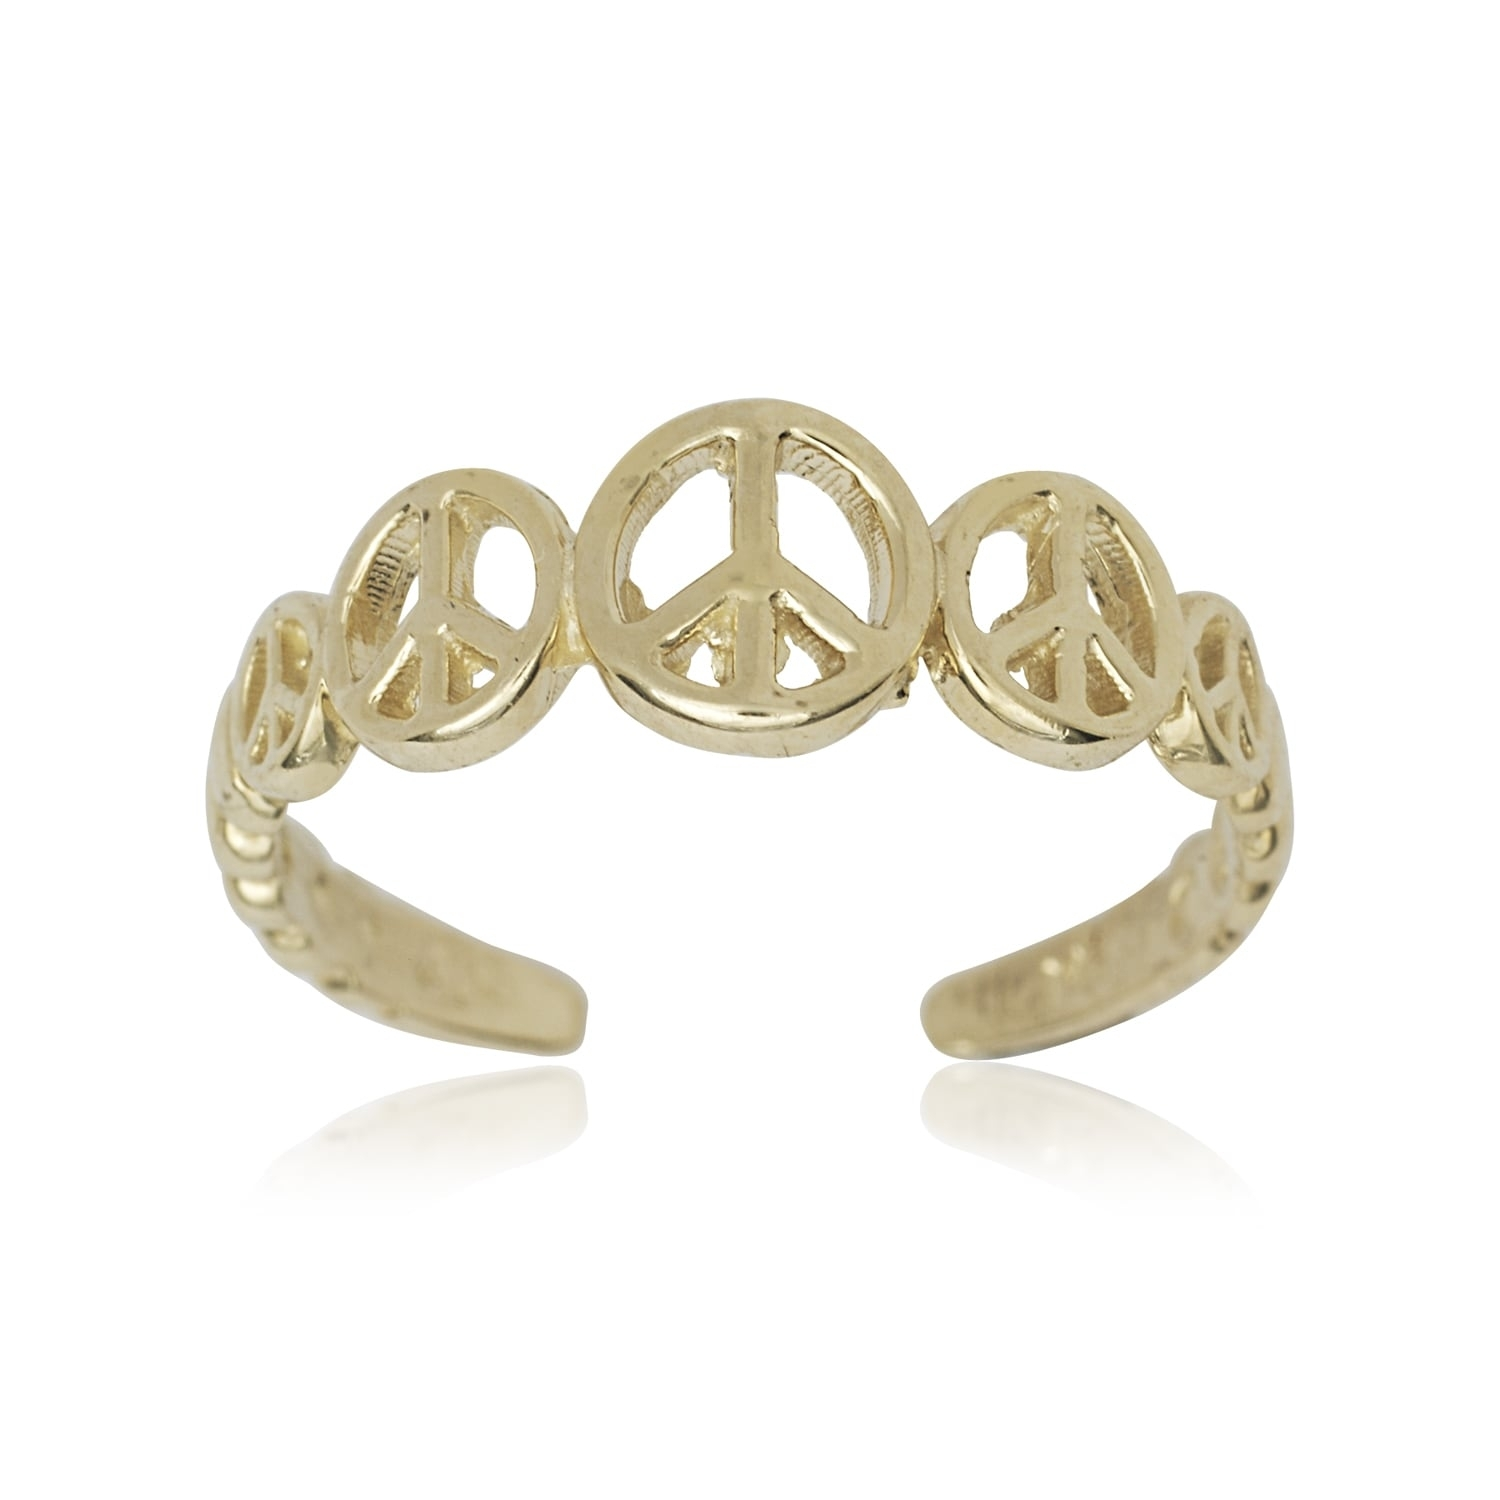 14K Yellow Gold Graduating Peace Sign Adjustable Toe Ring | Ebay With Regard To Newest 14K Toe Rings (View 3 of 25)